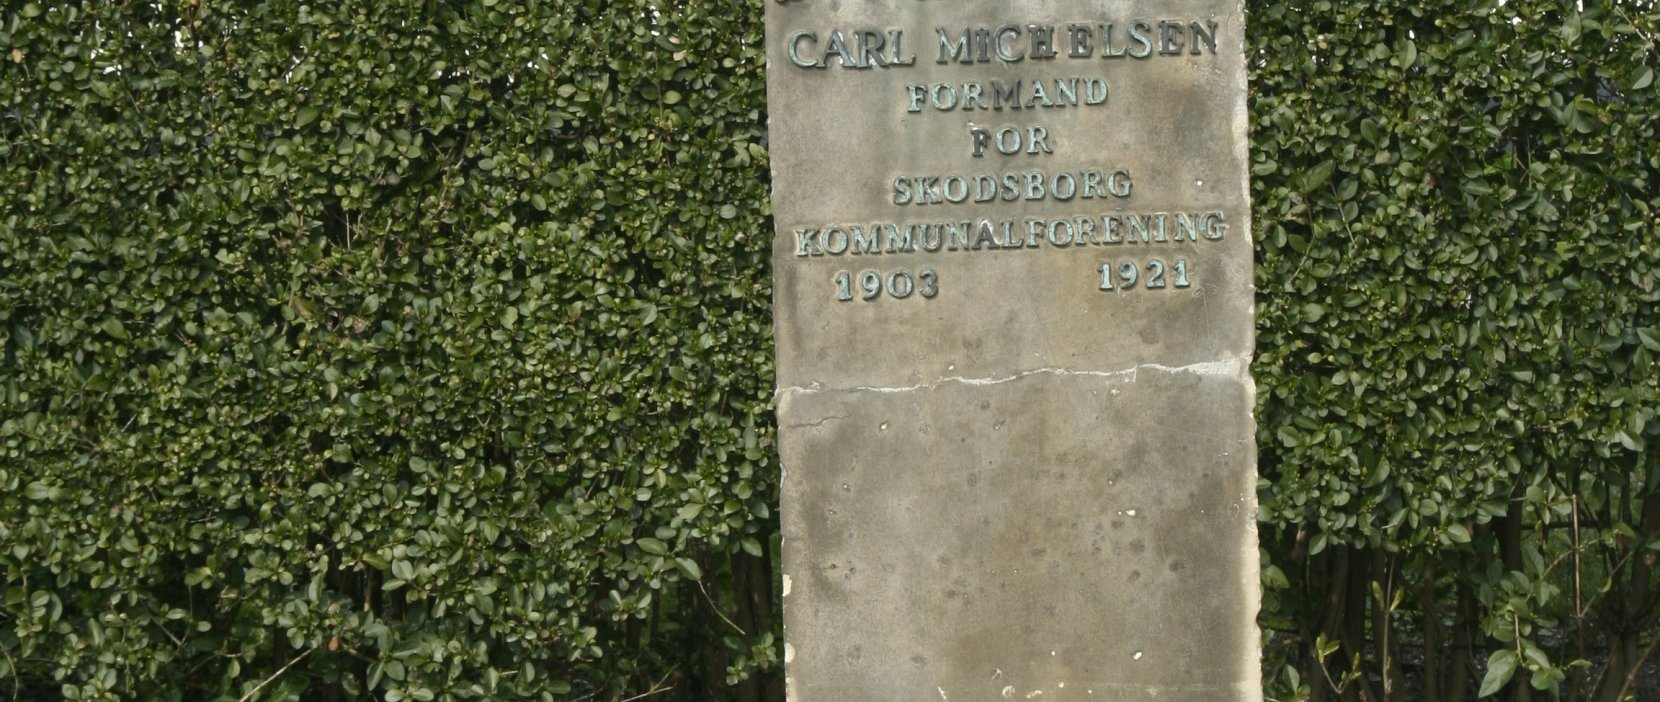 monument for Carl Michelsen